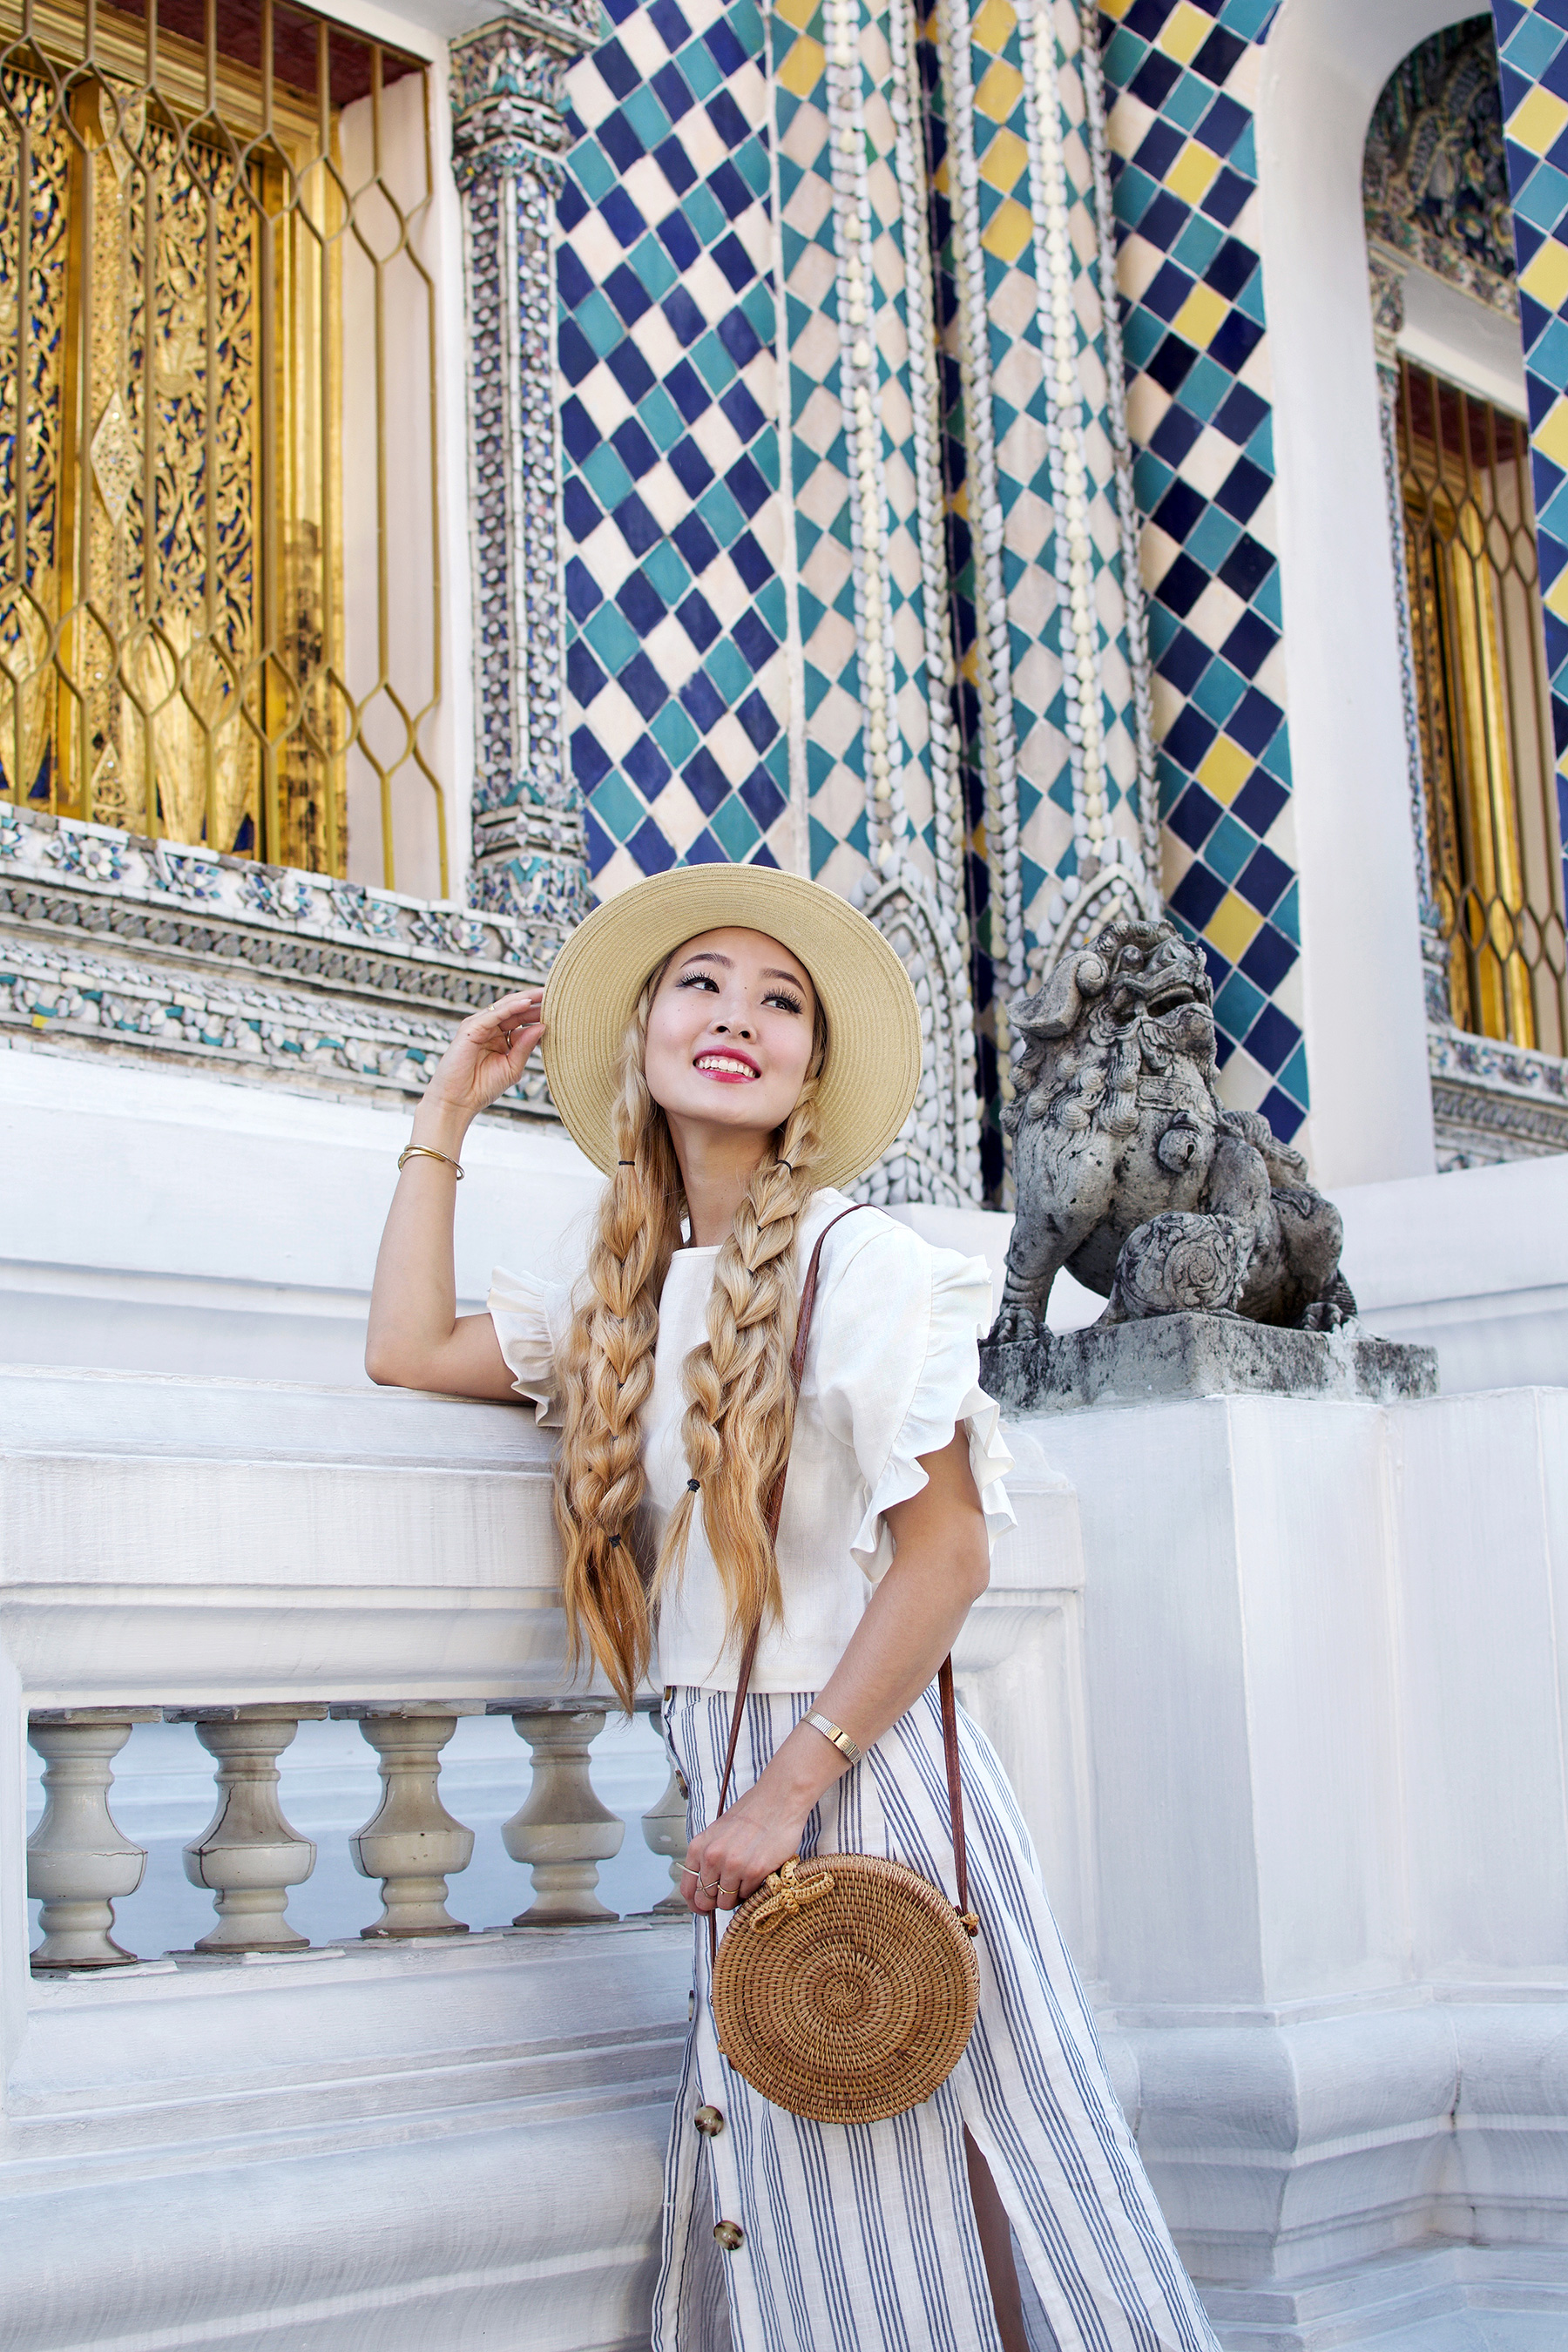 I'm kicking off my #Thailand travel content at the gorgeous Temple of the Emerald Buddha, known locally as Wat Phra Kaew. For all architecture and history lovers, this is a must see. Check out the post to see my travel outfit, amazing architectural views of Wat Phra Kaew, my new favorite Thai fashion brand, as well as tips on visiting, including the dress code, etiquette, and entrance fees! | #ontheblog | #ootd | #travelThailand | #traveloutfit | #WatPhraKaew | #Bangkok | #visitThailand | #travelguide | #thingstodo